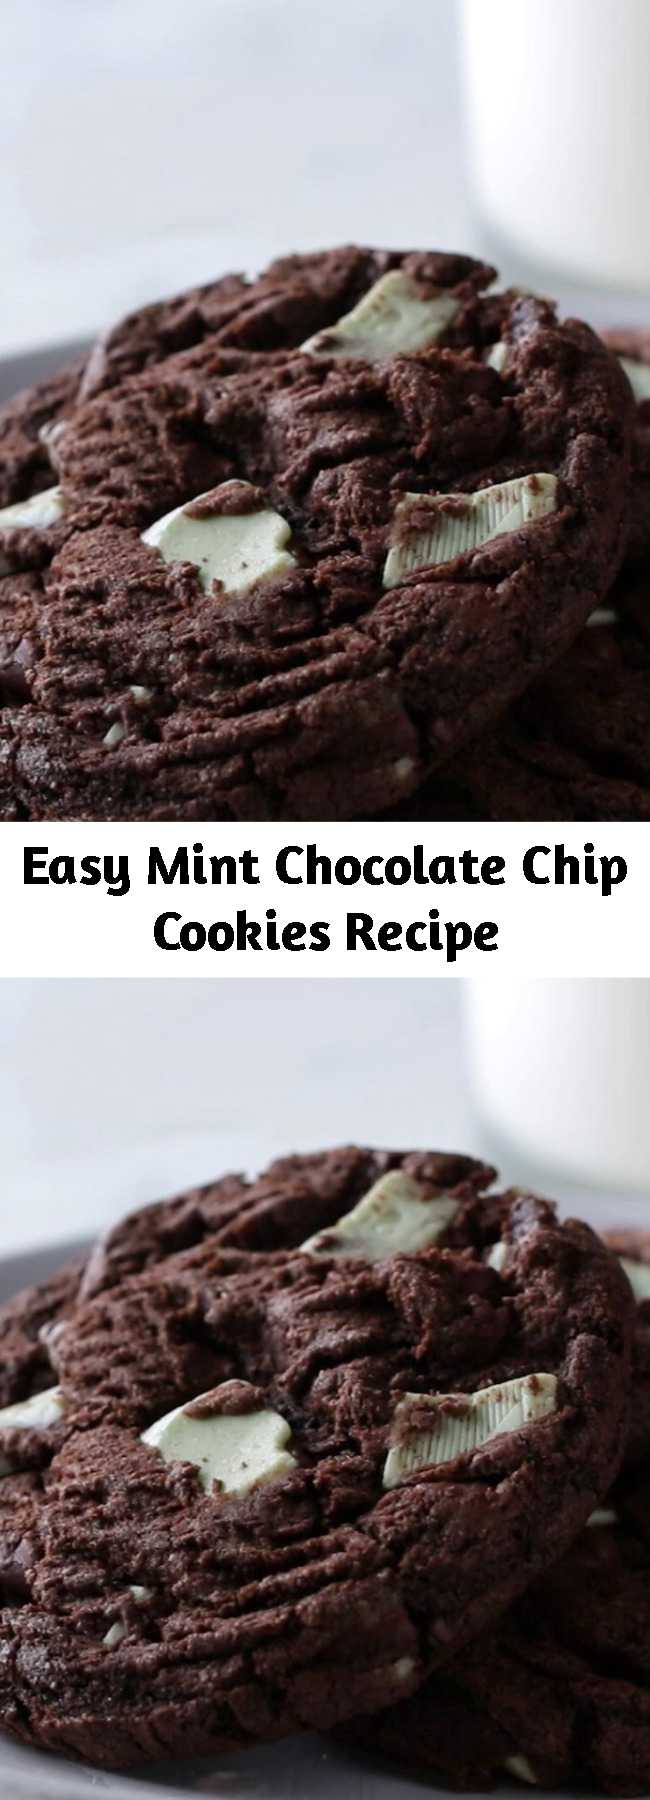 Easy Mint Chocolate Chip Cookies Recipe - Extremely Delicious!! Fun and easy to make too.